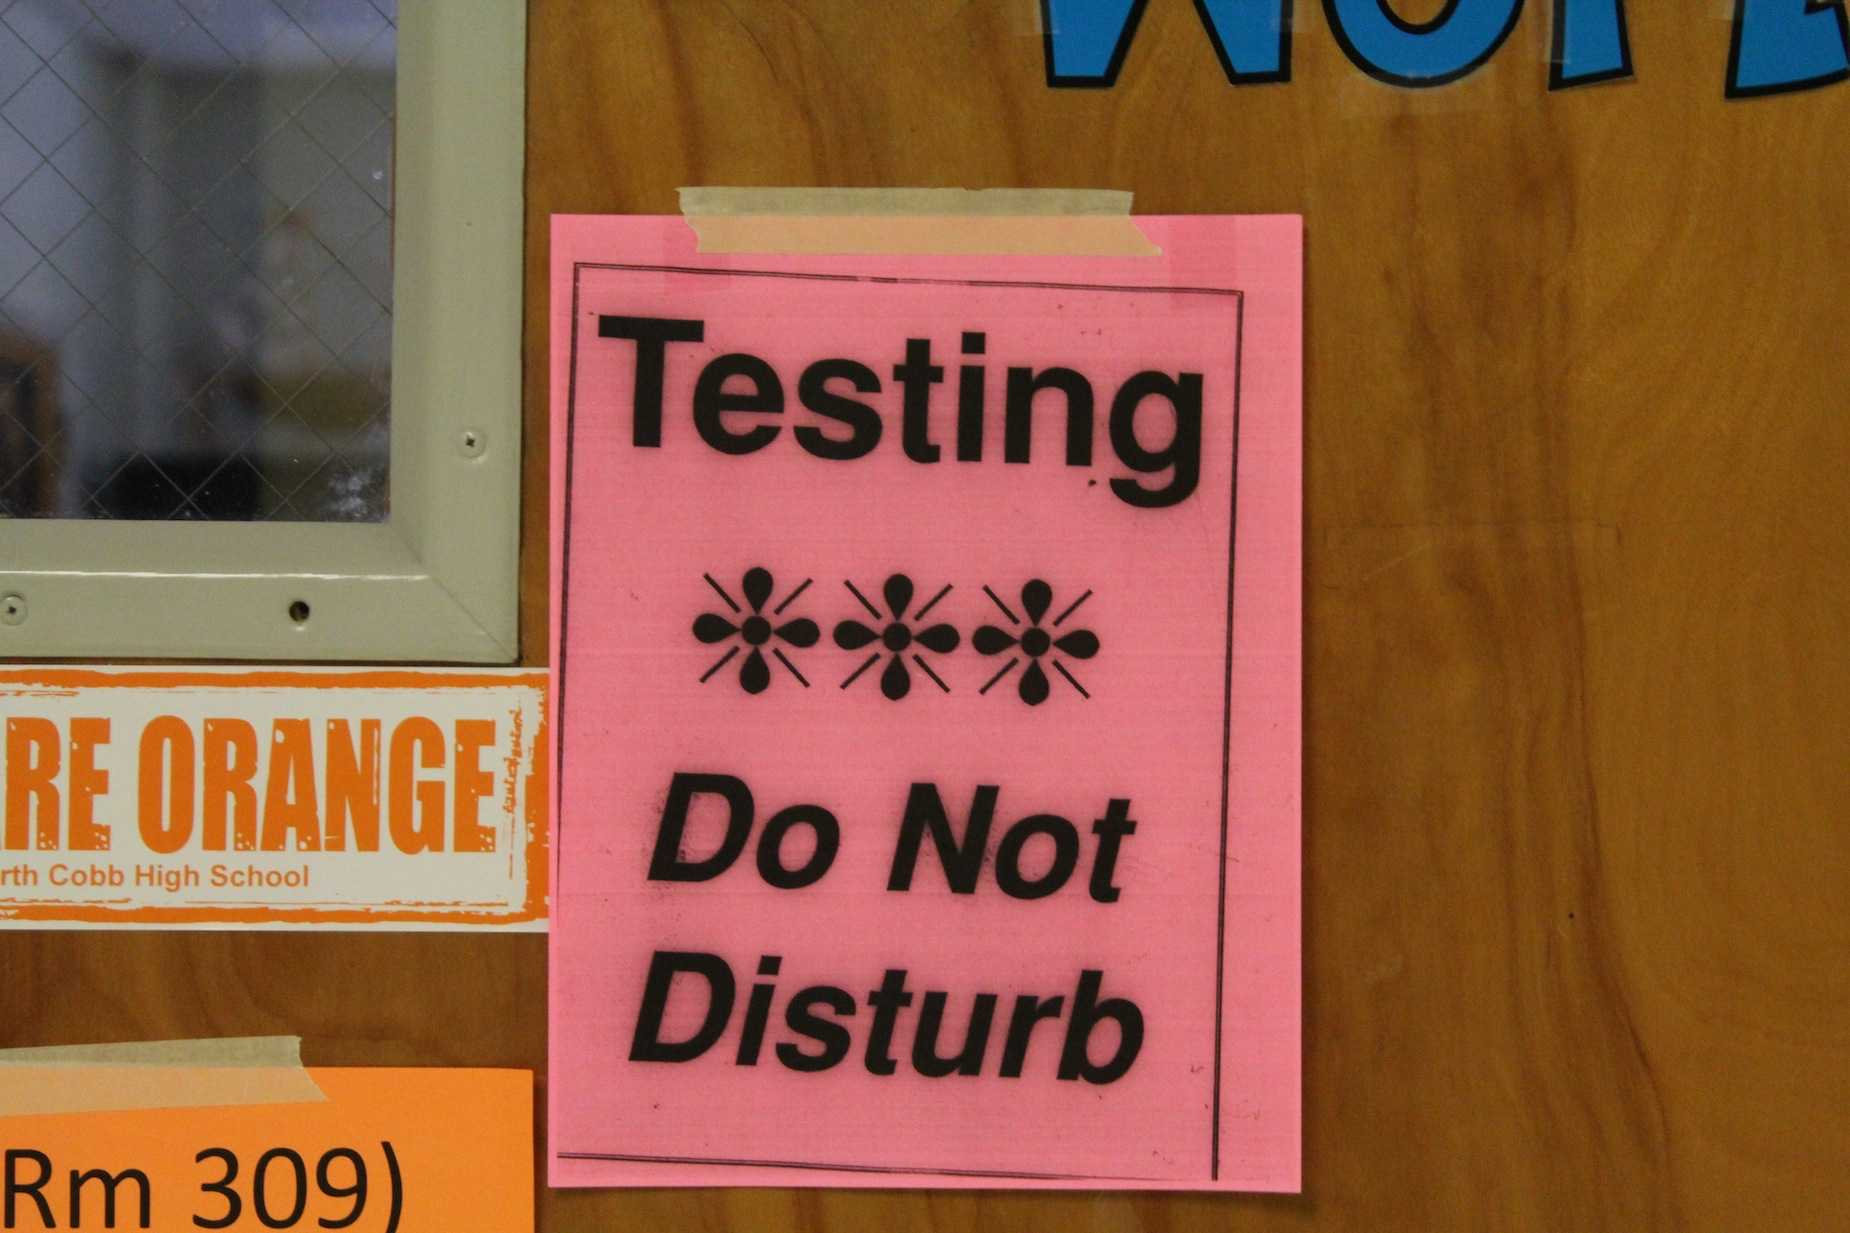 NC turns into a testing haven as underclassmen take the PSAT from 8 a.m. to 12:30 p.m. Students came to school in pajamas ready to face the long test — or for those not taking the test, a long homeroom — that took up most of first and second period.